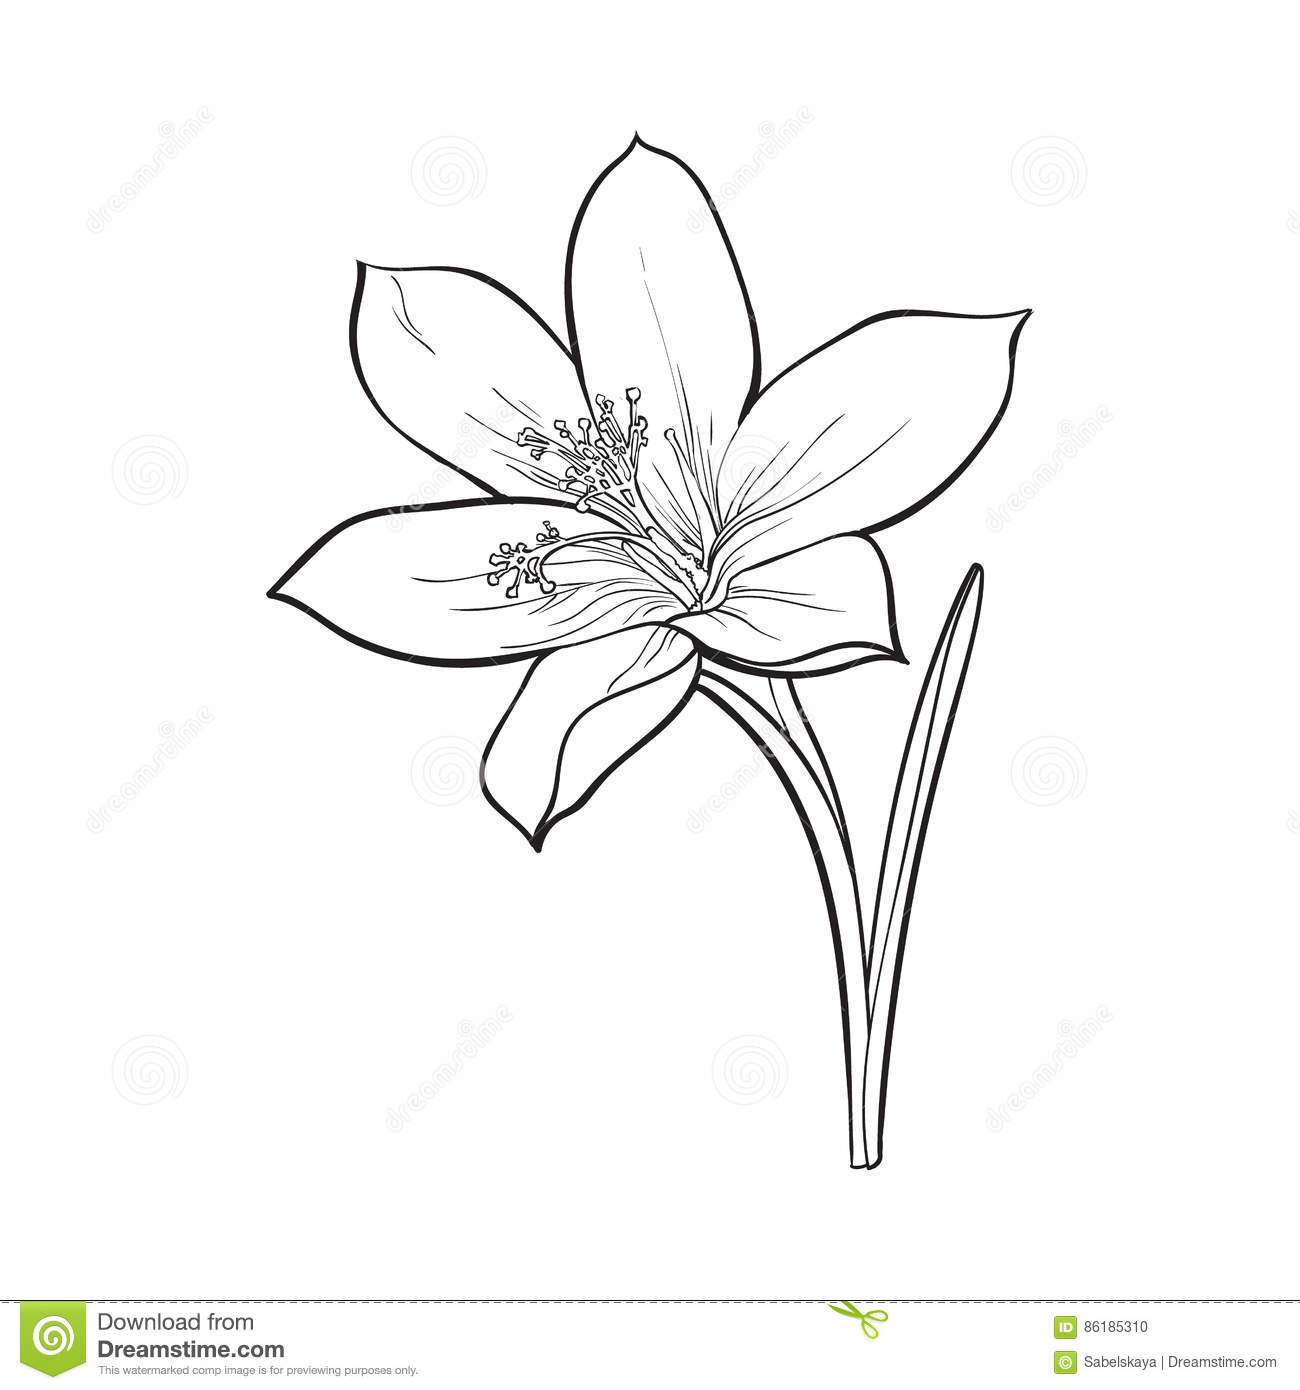 Flower Leaf Line Drawing : Delicate single crocus spring flower with stem and leaf